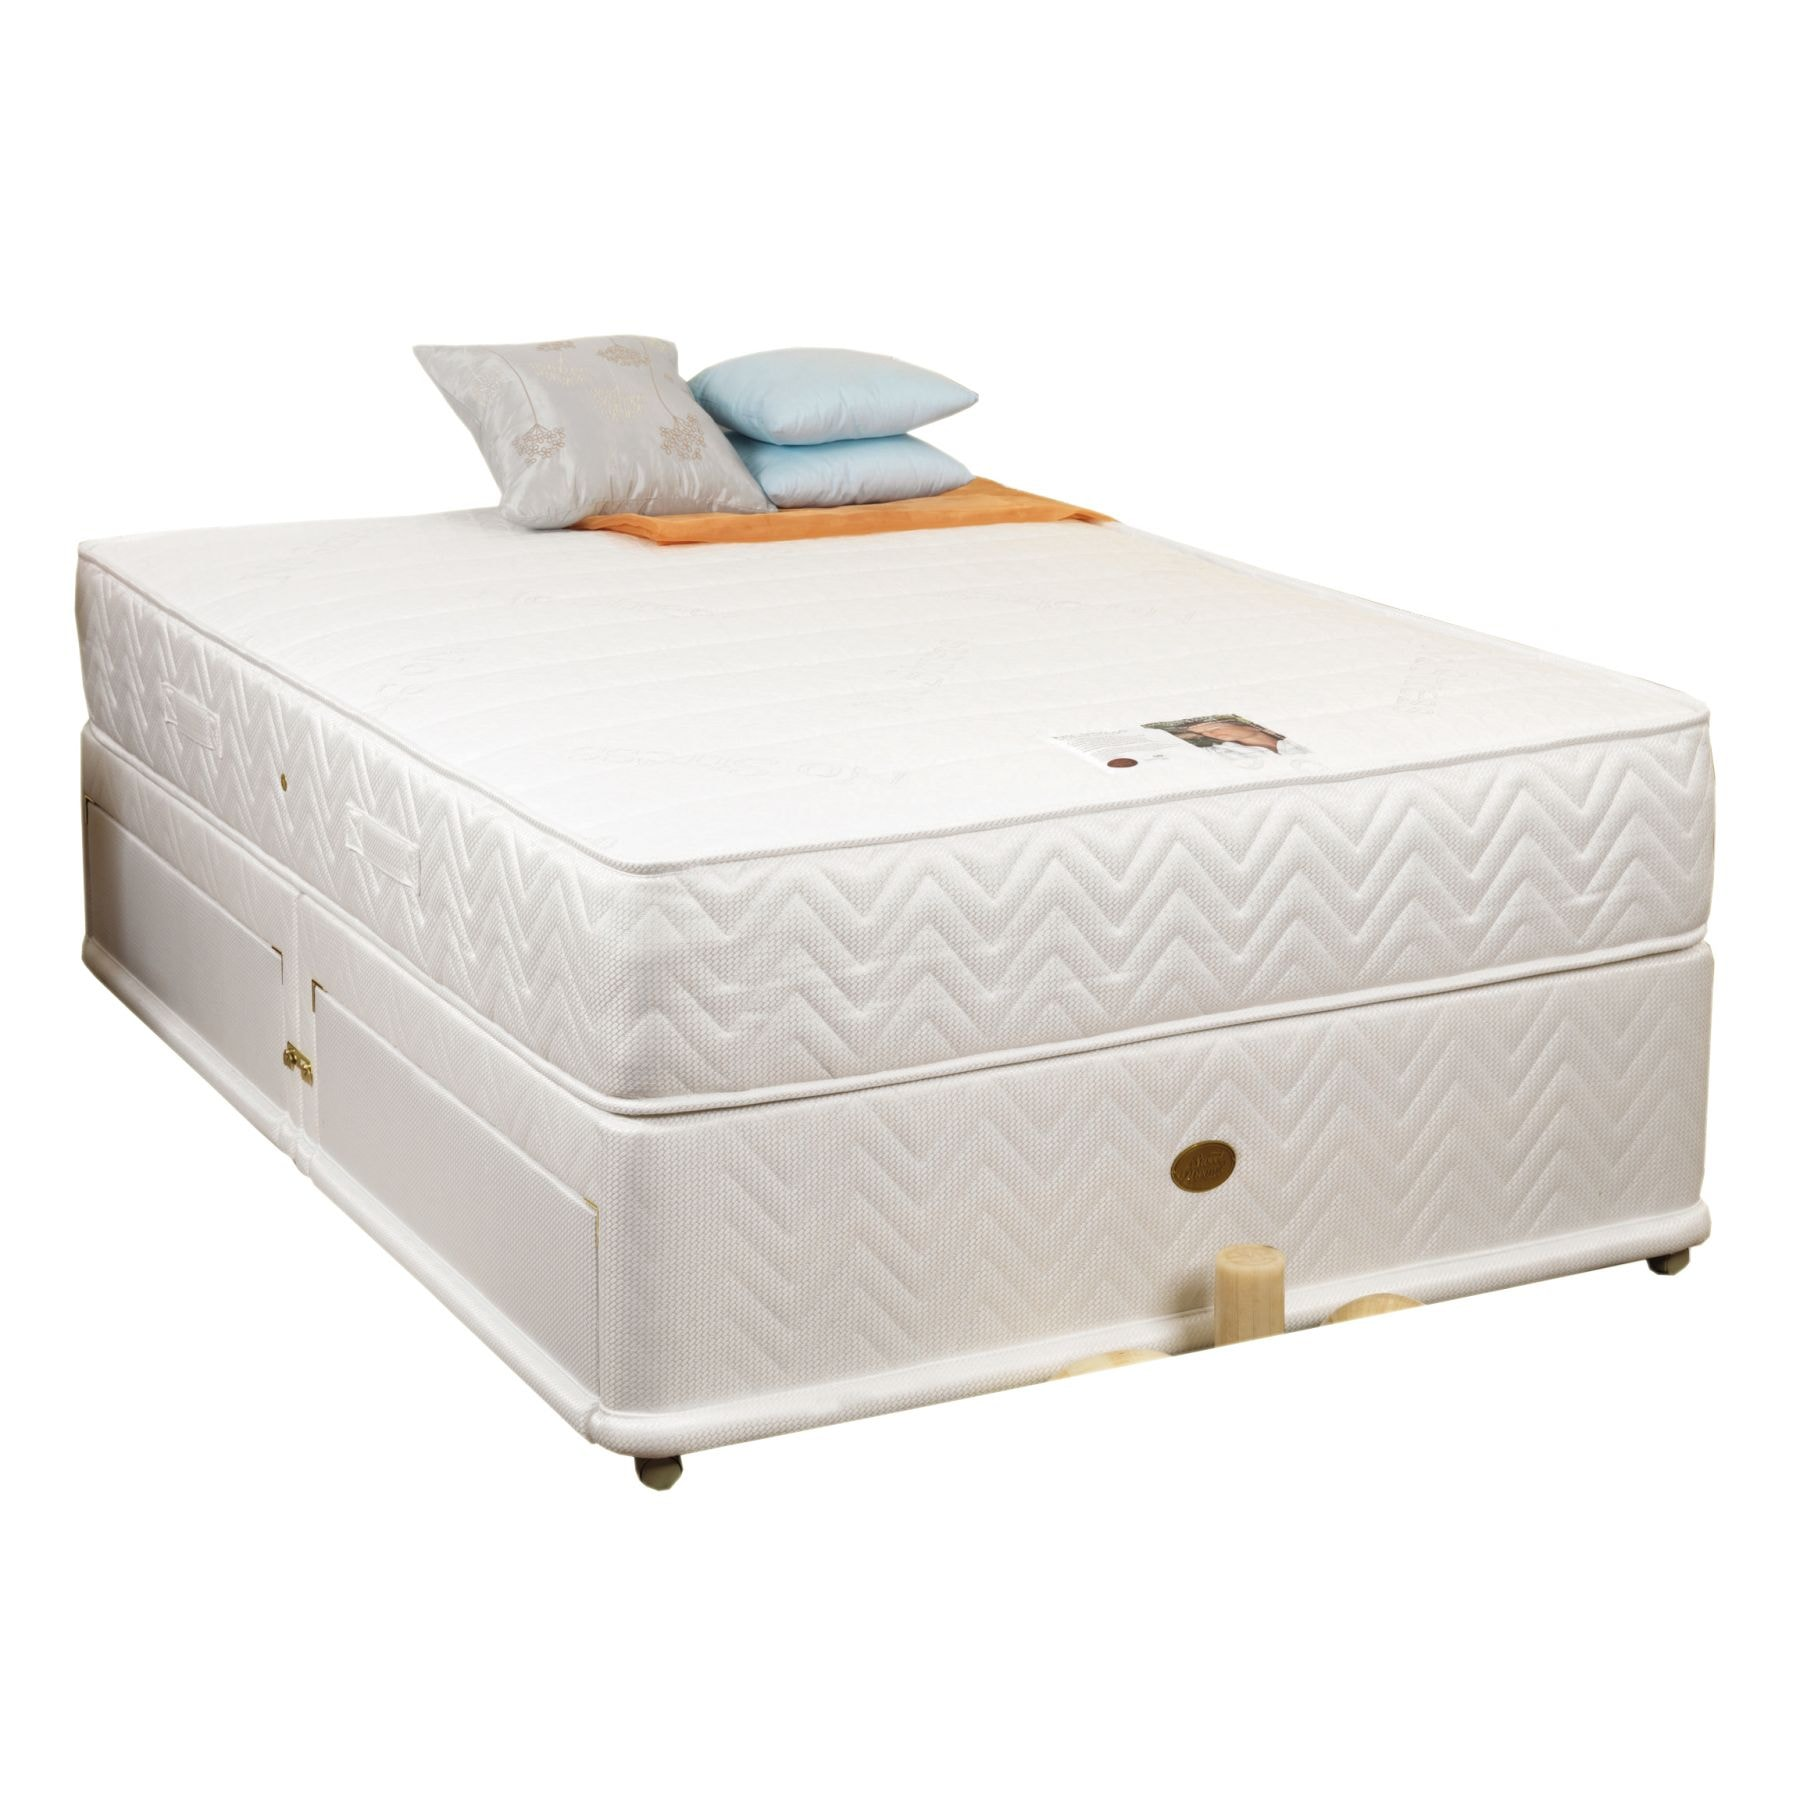 Tranquility 1200 divan base mattress for Divan bed base sale